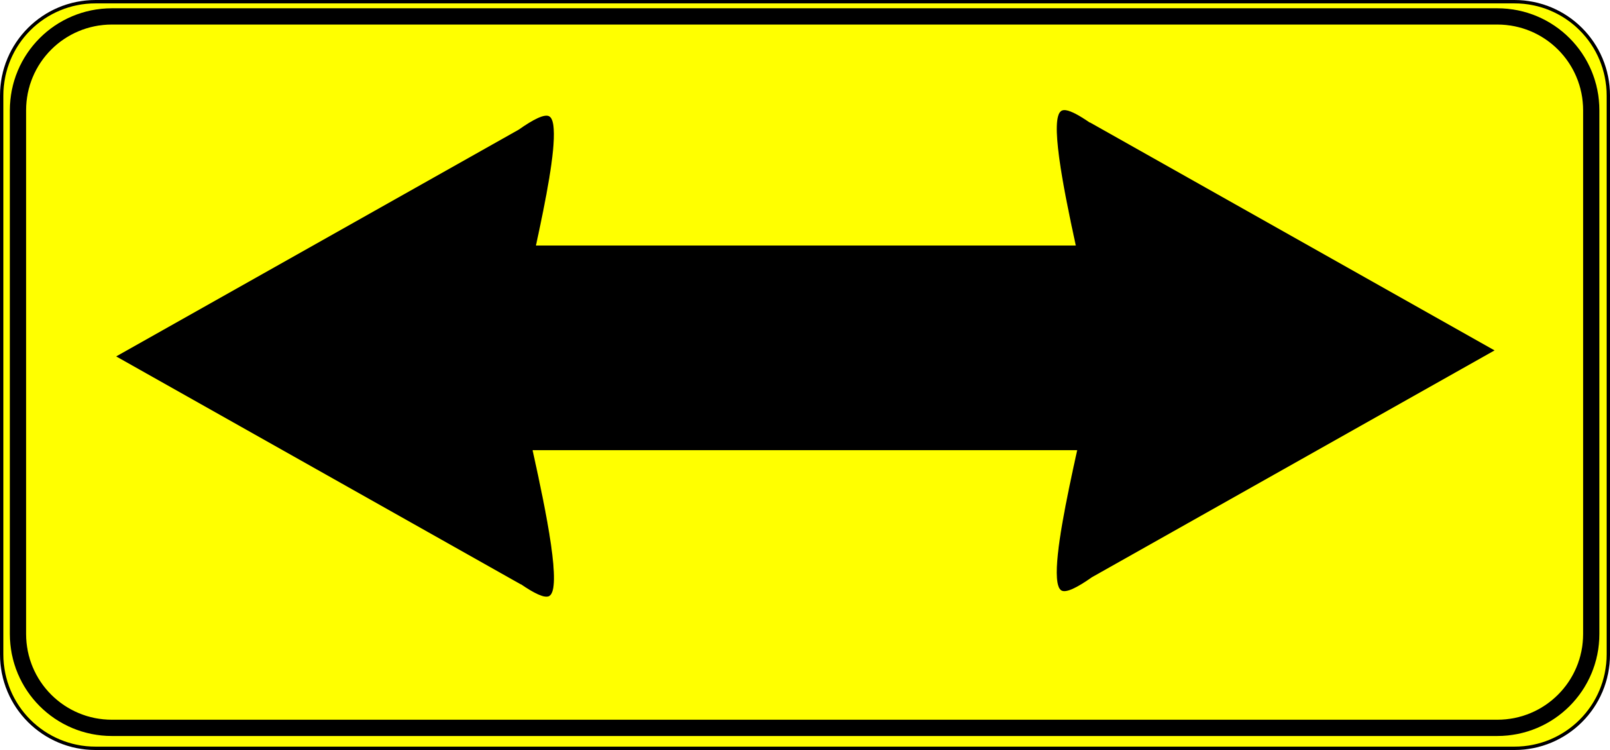 Arrow Traffic Sign Symbol Computer Icons Free Commercial Clipart